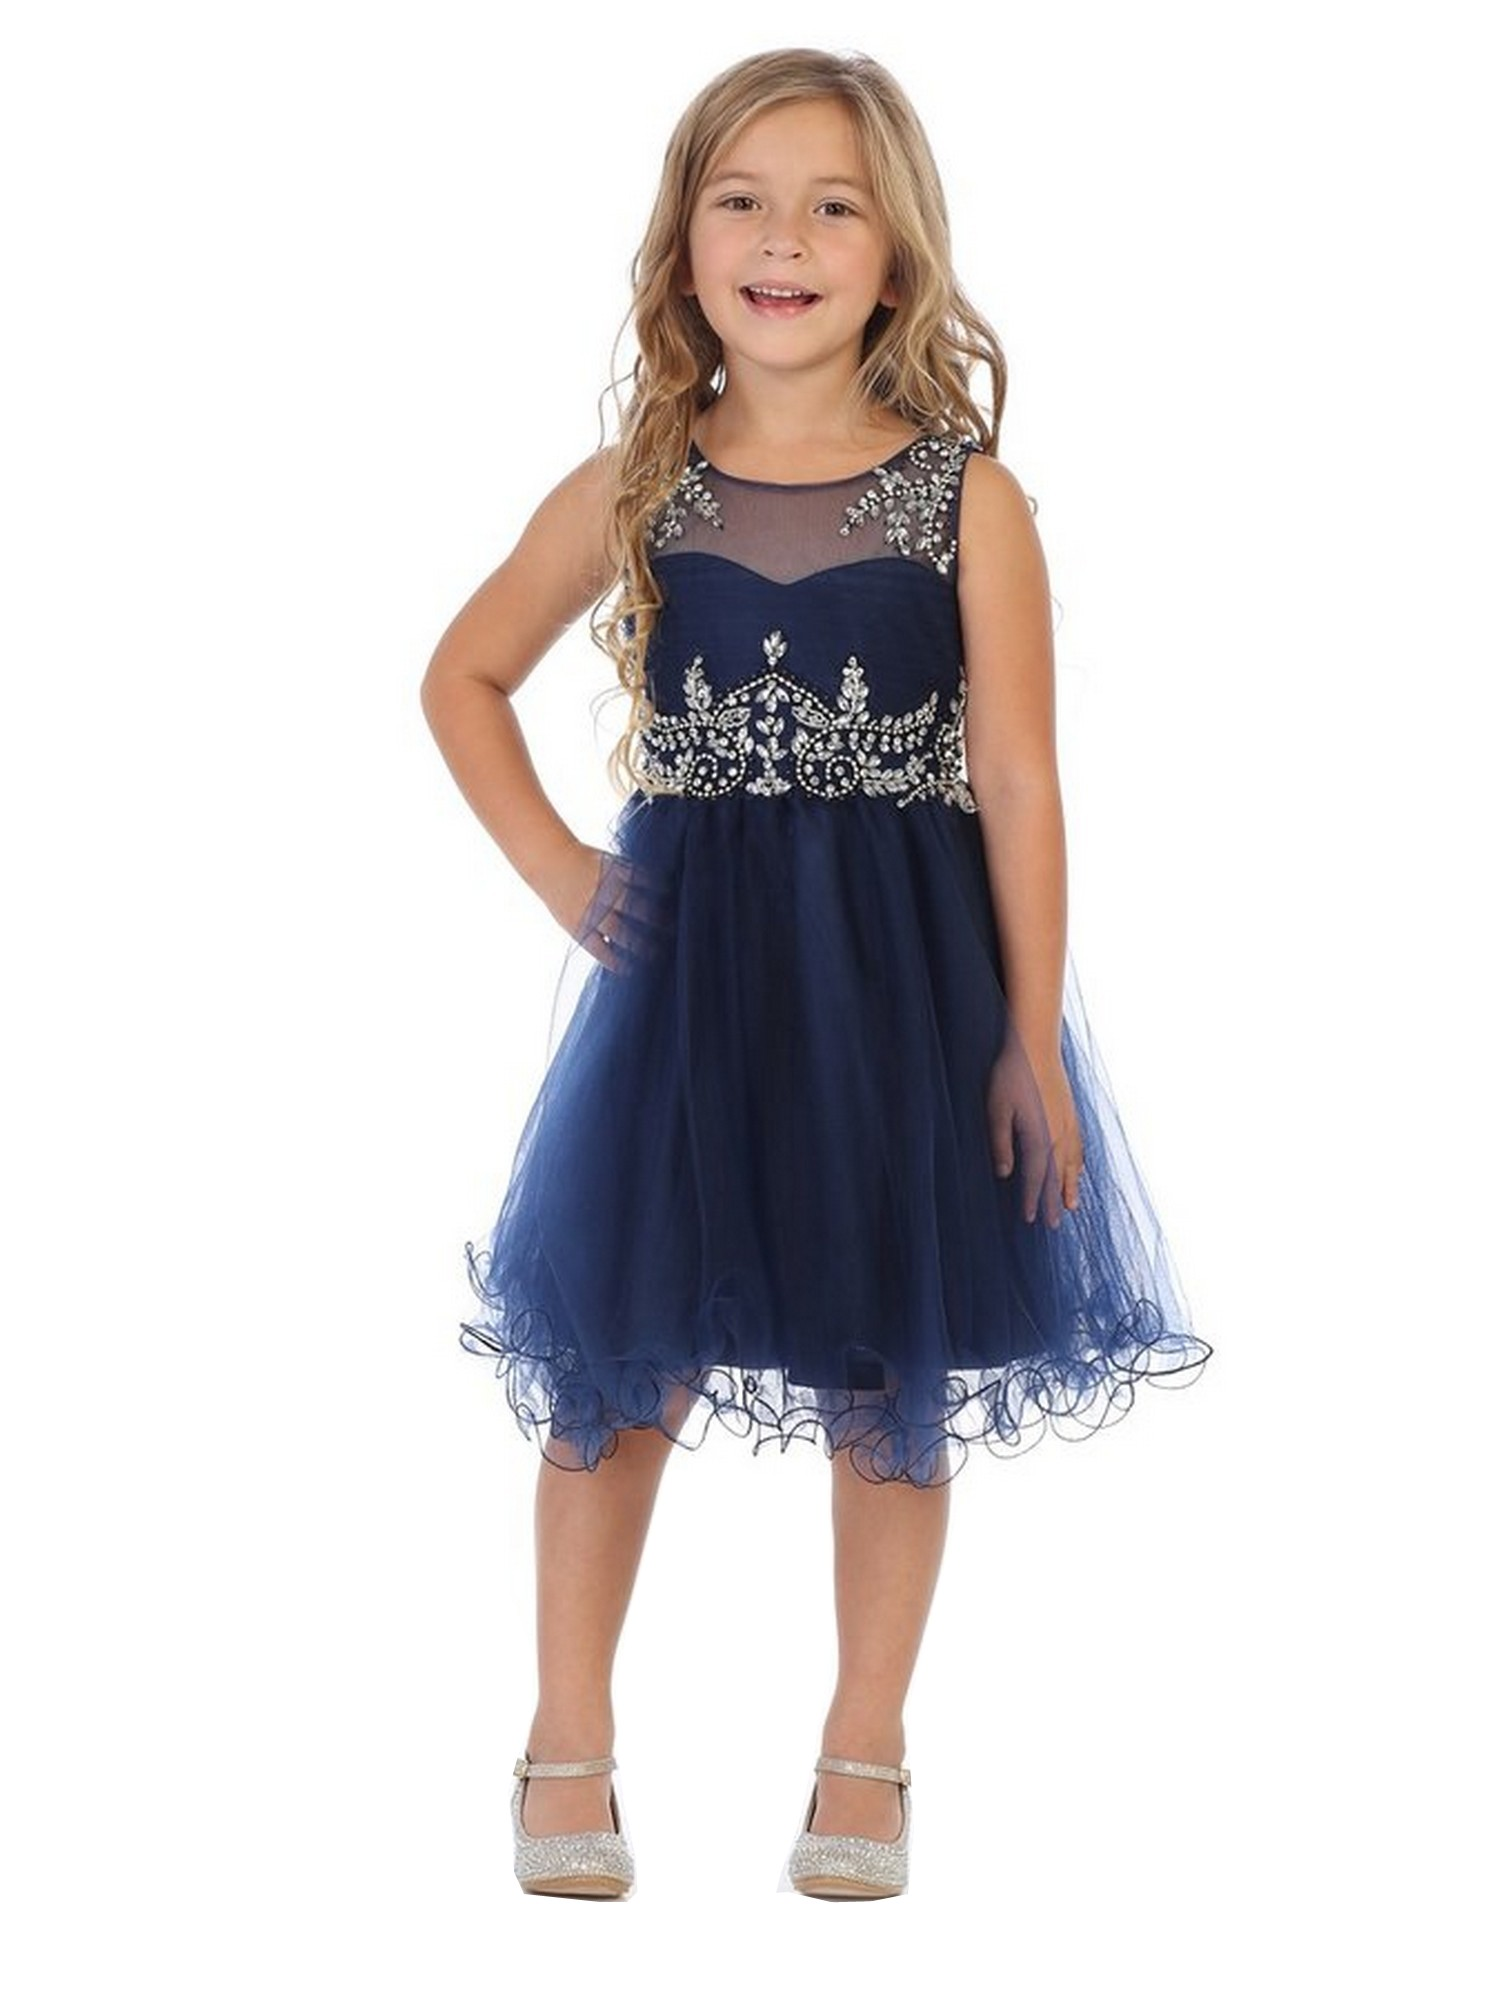 My Best Kids Big Girls Navy Stone Accented Junior Bridesmaid Dress 8-18 -  Sophia s Style 3c02916ac7